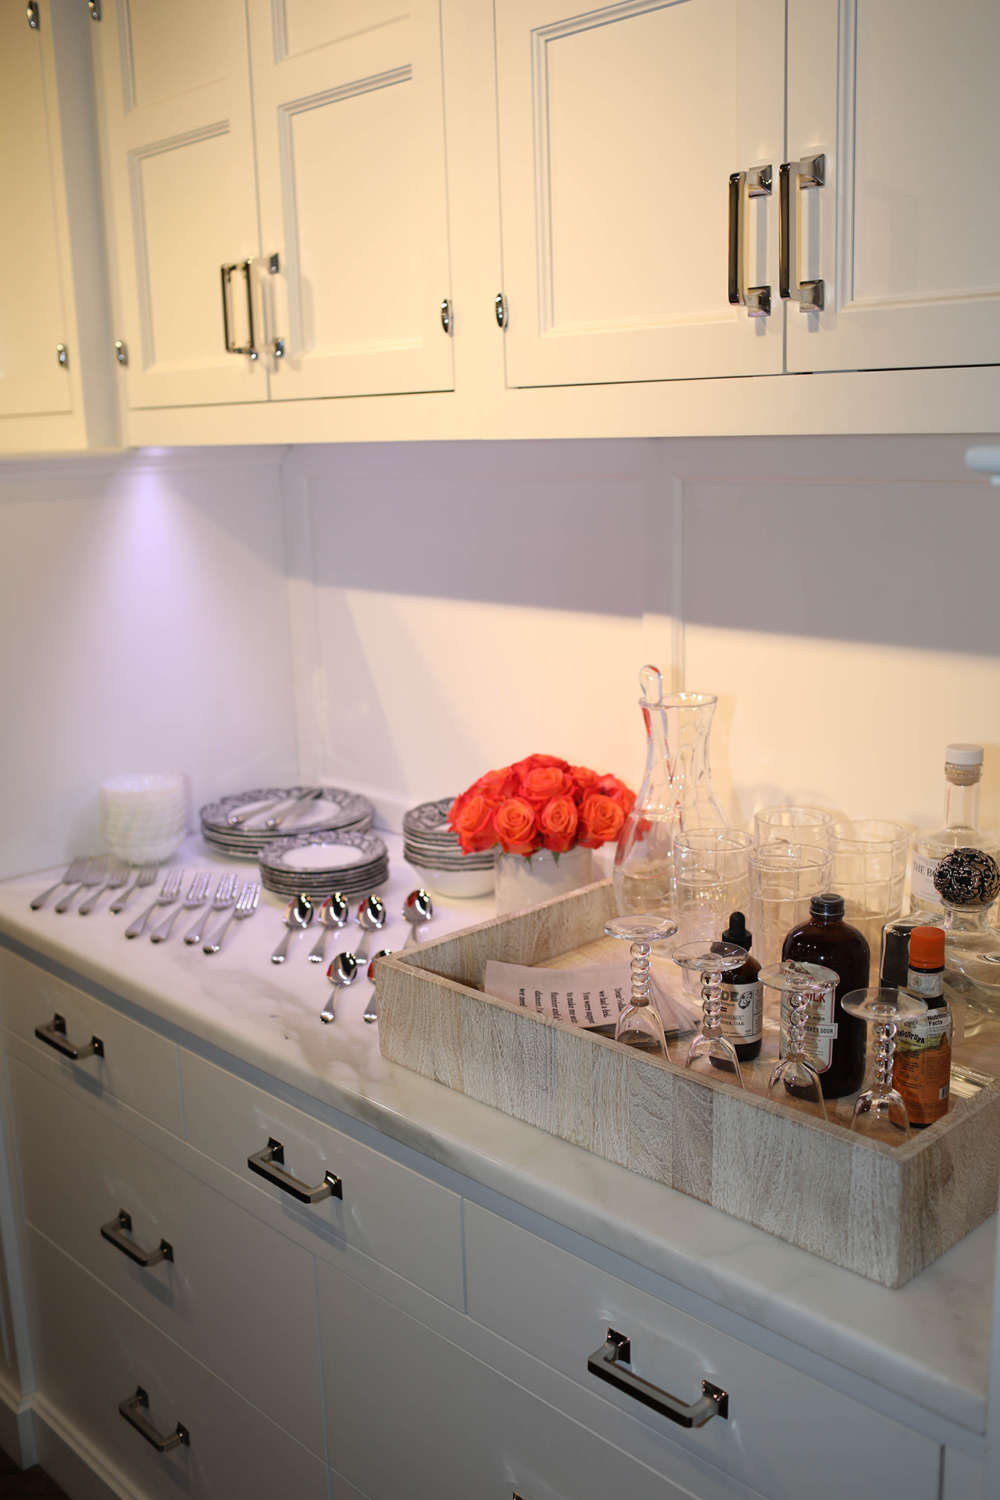 Wet bar area with white painted shaker style cabinets, white quartz counter and robust stainless hardware.